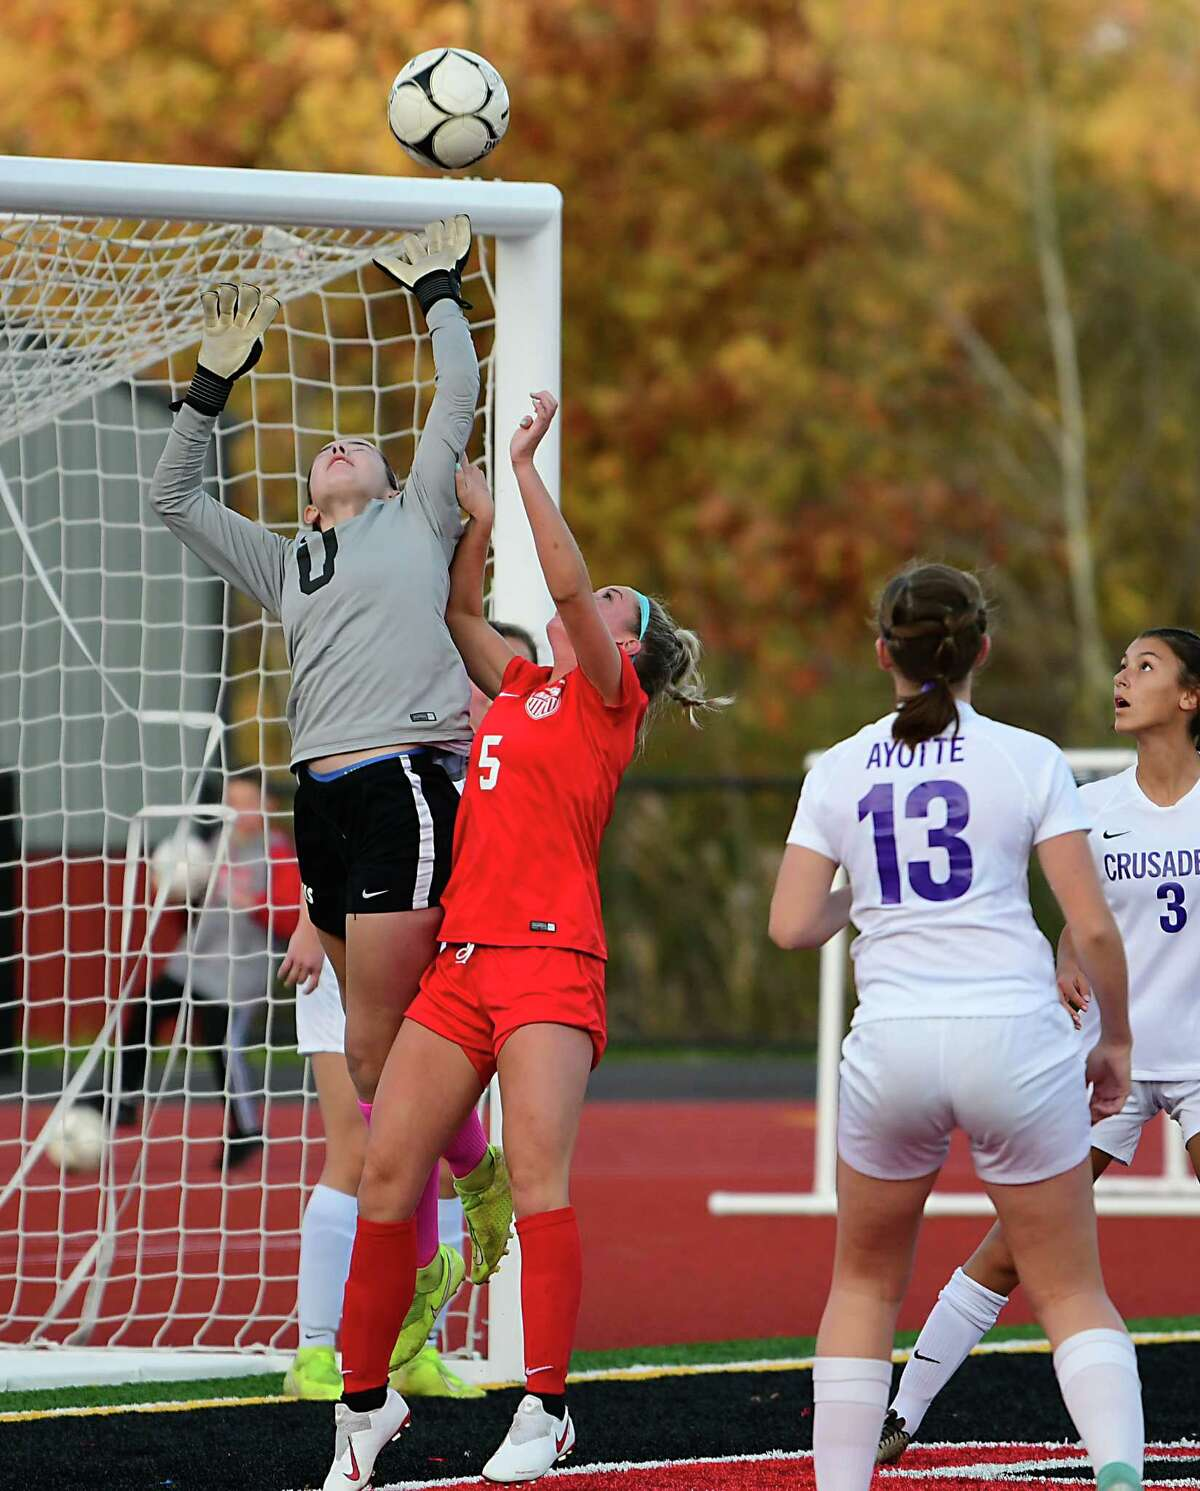 Catholic Central High School goal keeper Maddie Finn, left, makes a save after Mechanicville's Dani Rubino, #5, attempts a goal during the Class B girl's soccer playoff game on Thursday, Oct. 24, 2019 in Mechanicville, N.Y. (Lori Van Buren/Times Union)